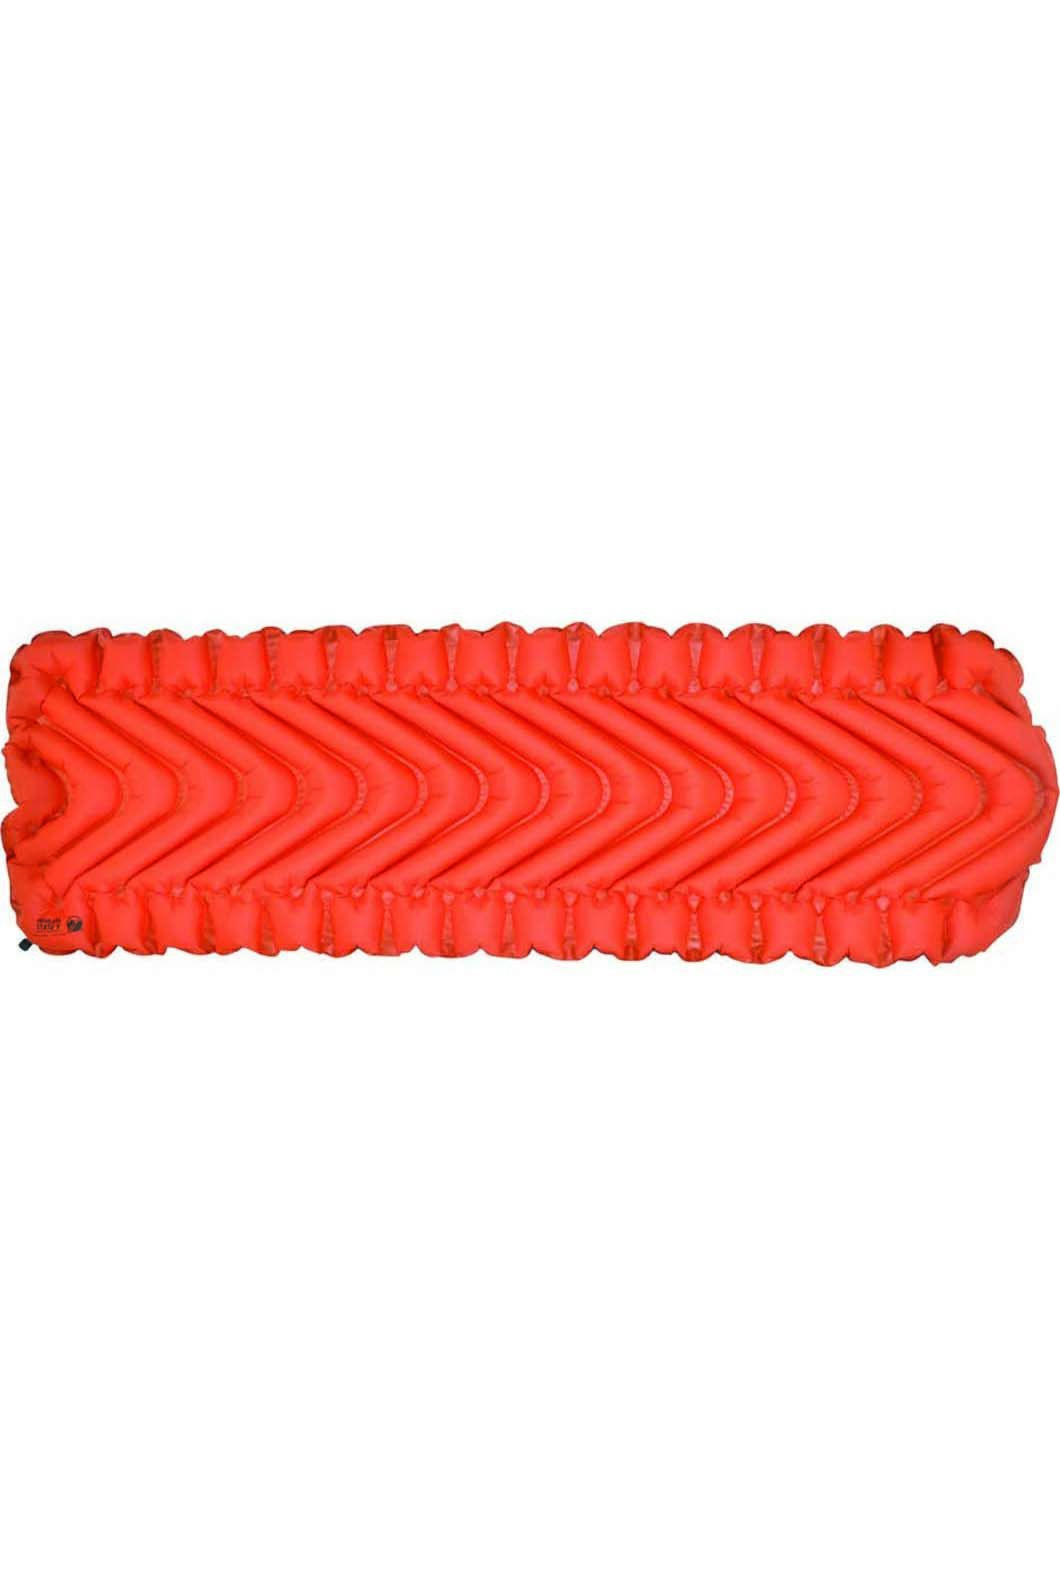 Klymit Static V Insulated Inflatable Mat, None, hi-res